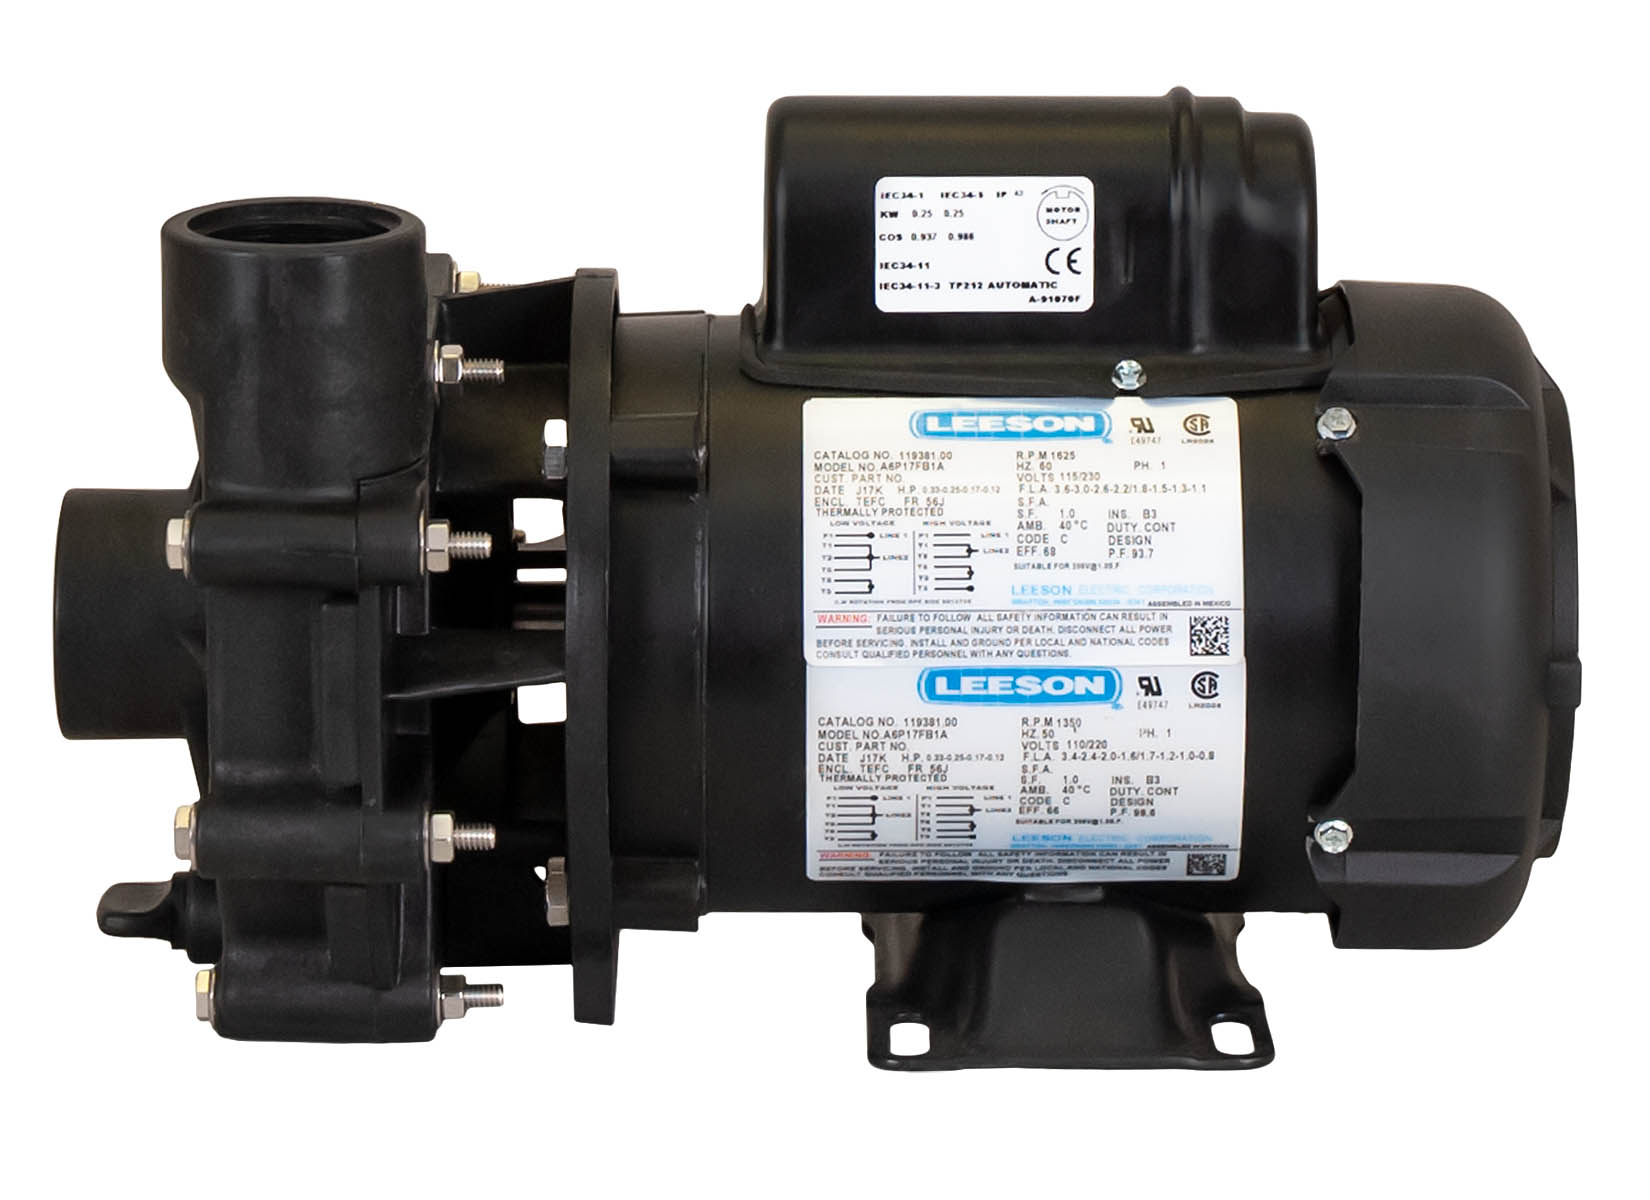 ValuFlo 1000 Pump with Leeson Motor right side view